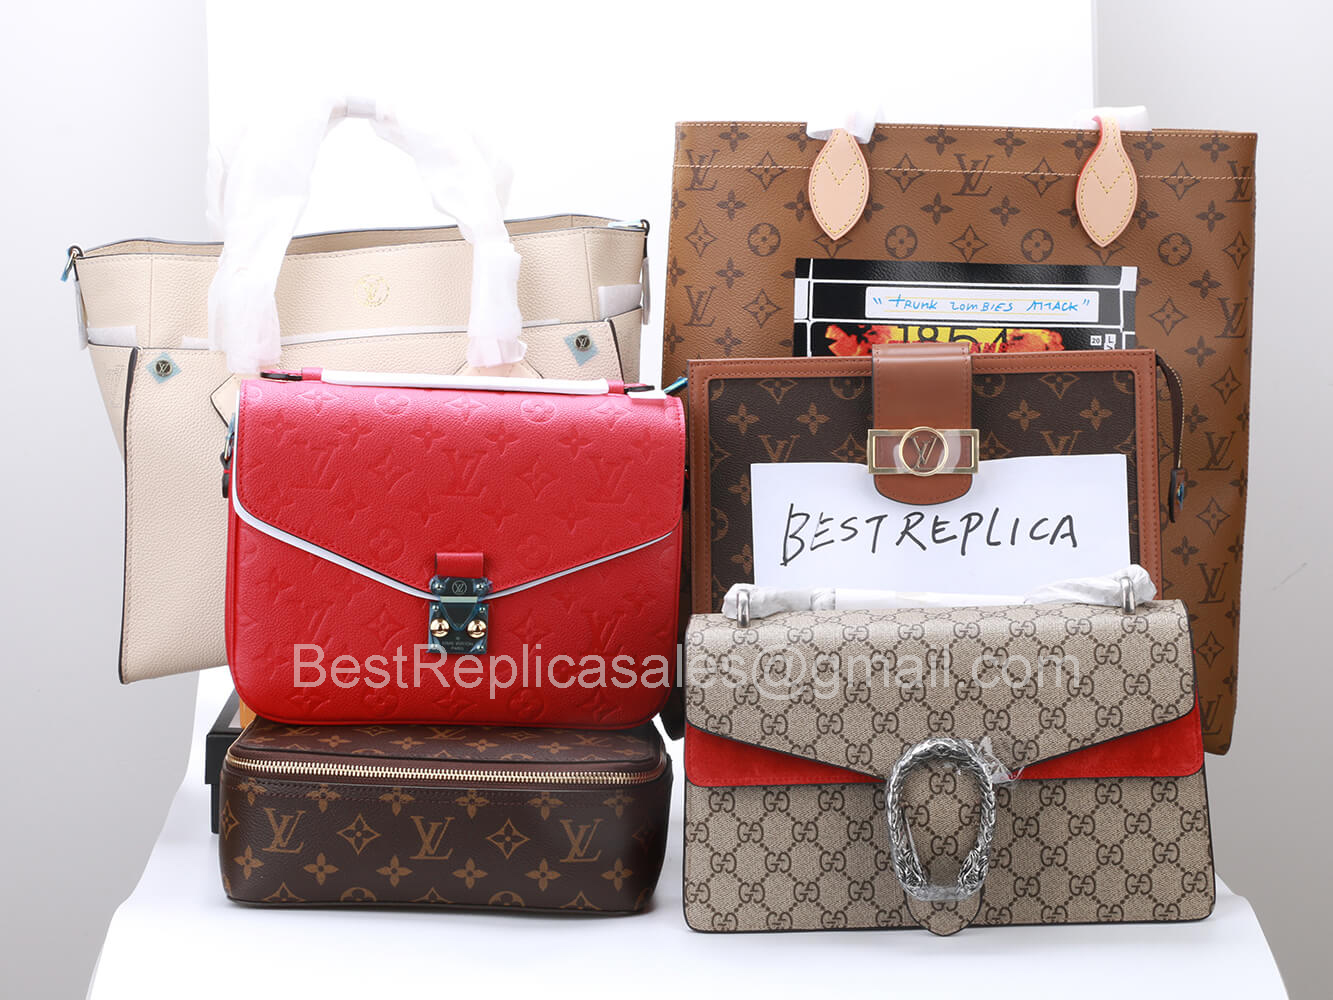 mirror image quality gucci bags copy 01